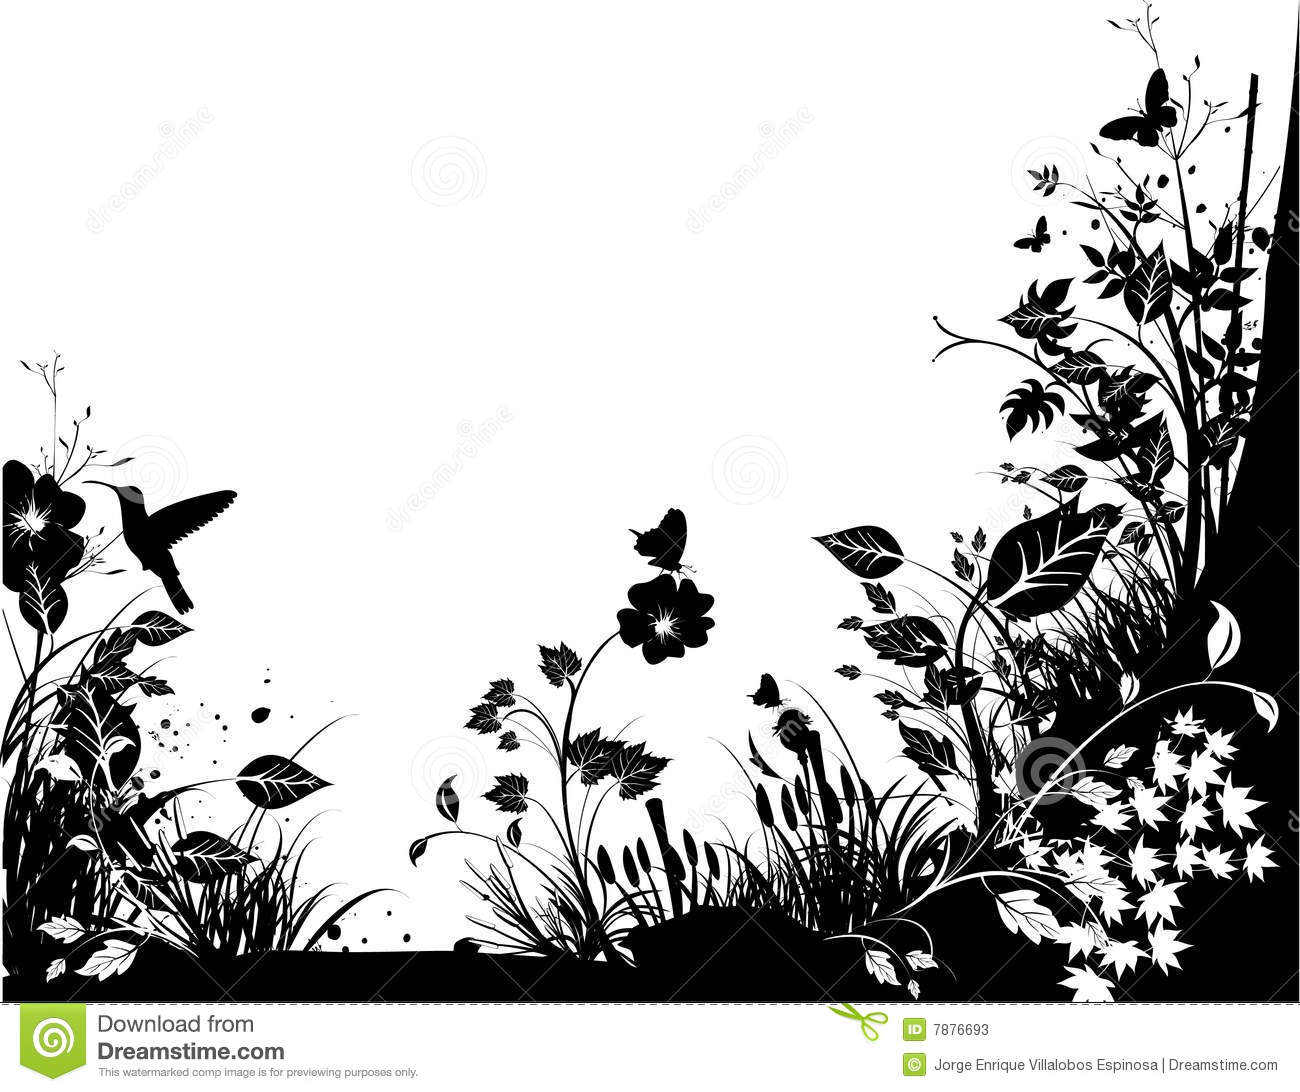 Black And White Nature Illustration Over A White Background